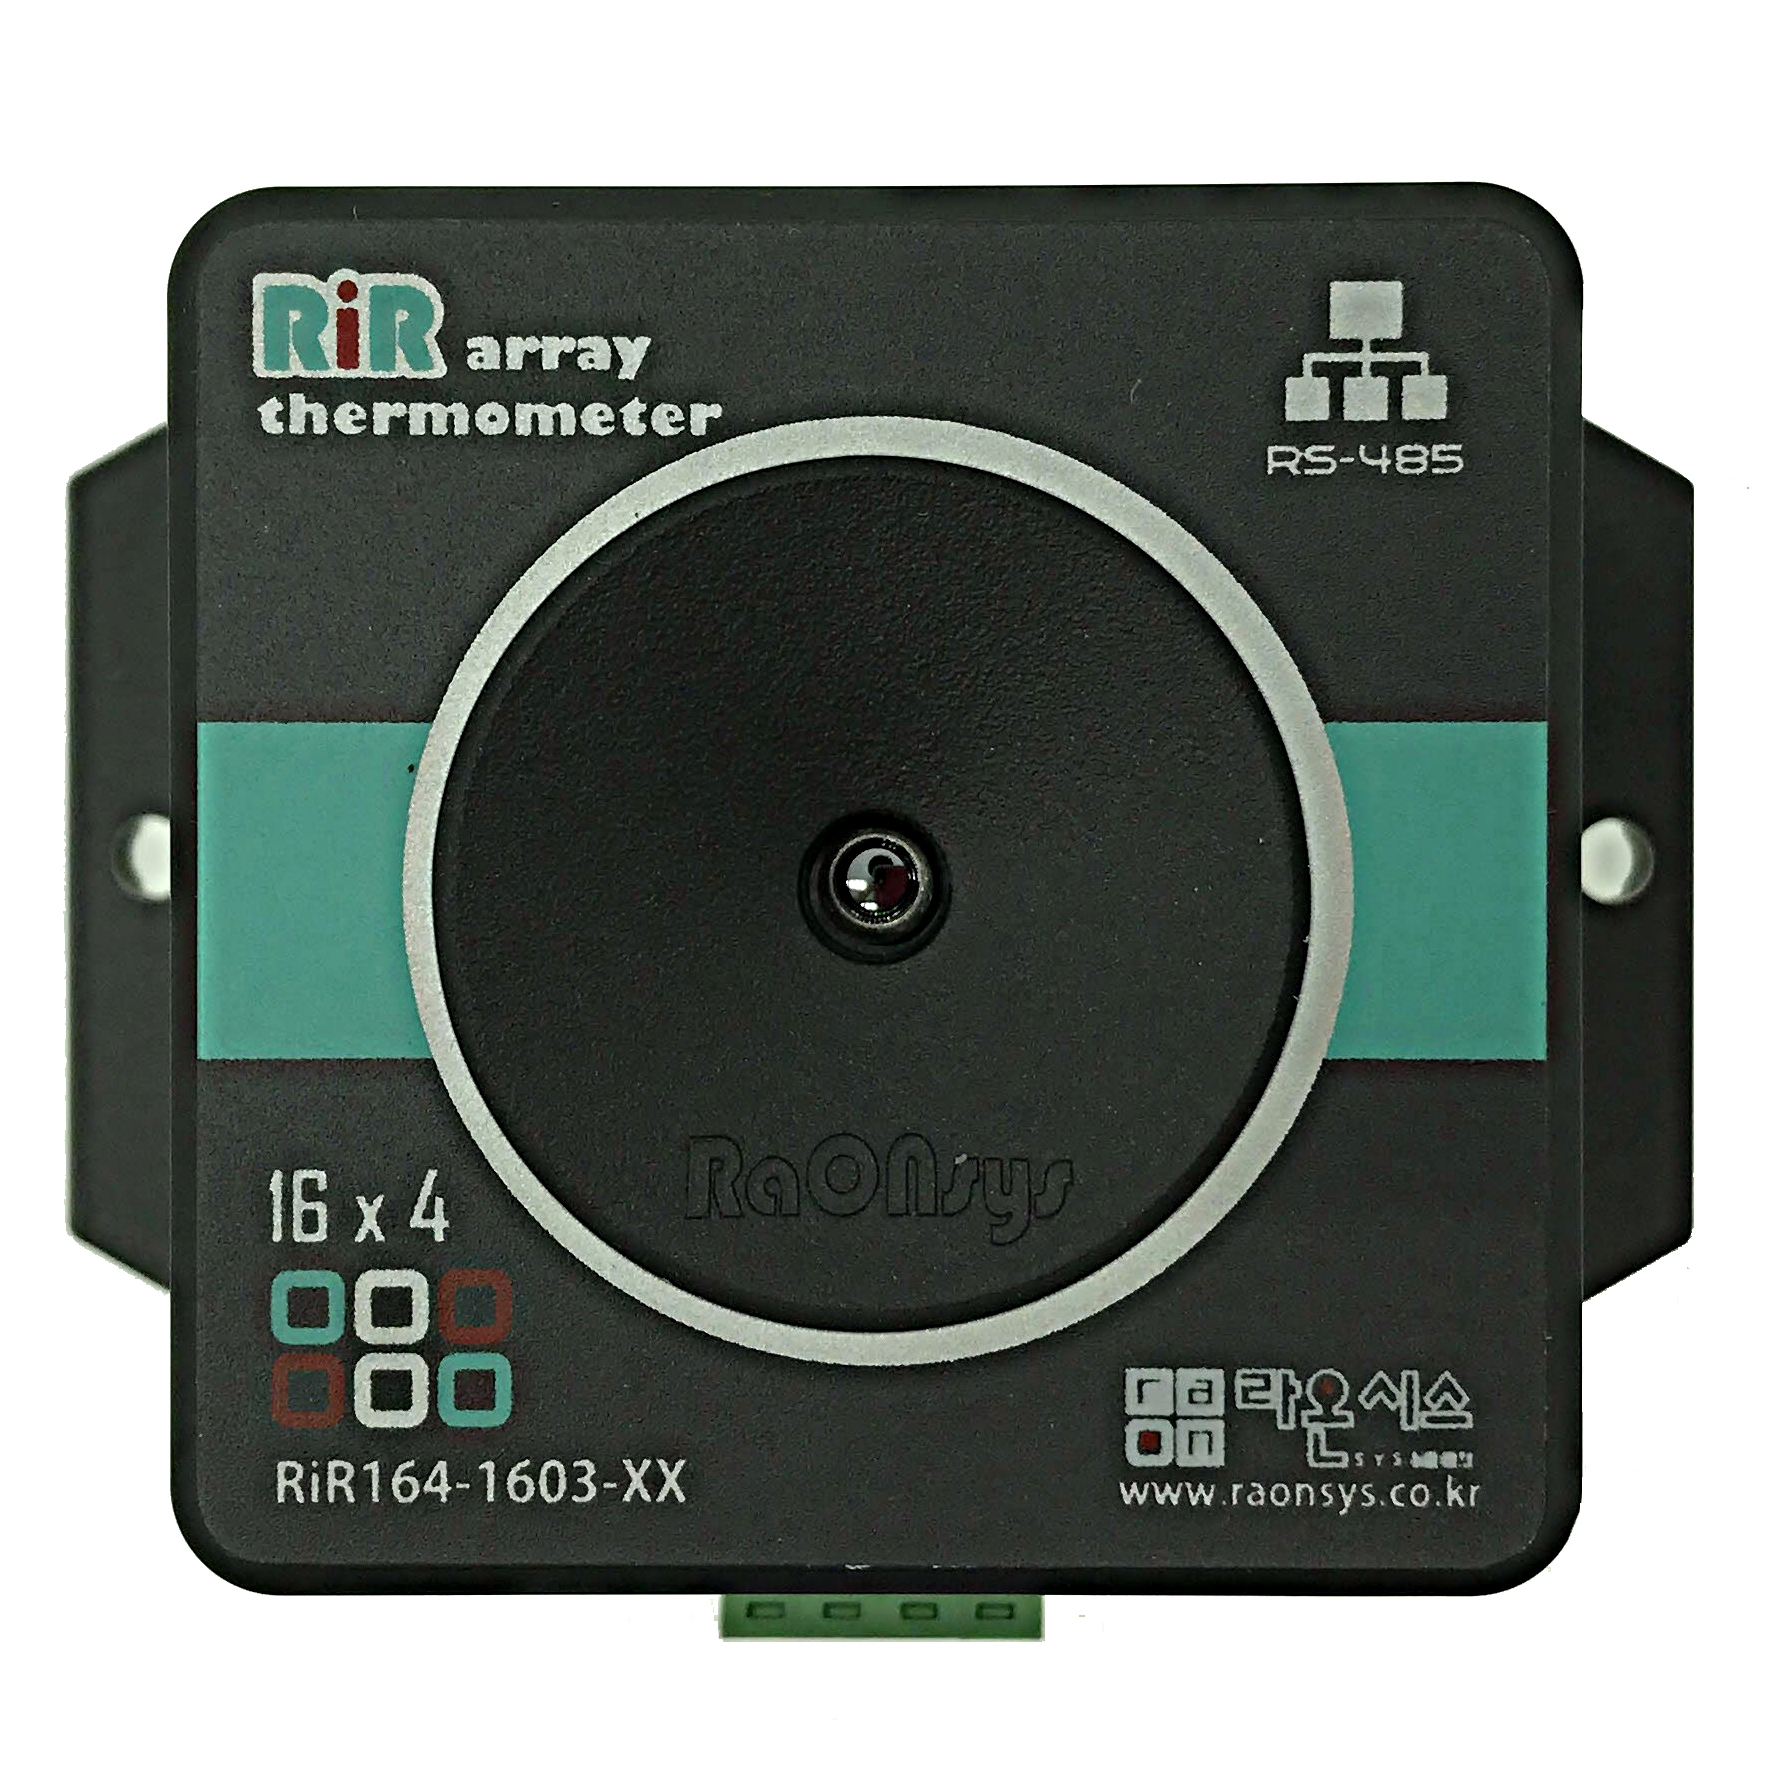 RiR array thermometer